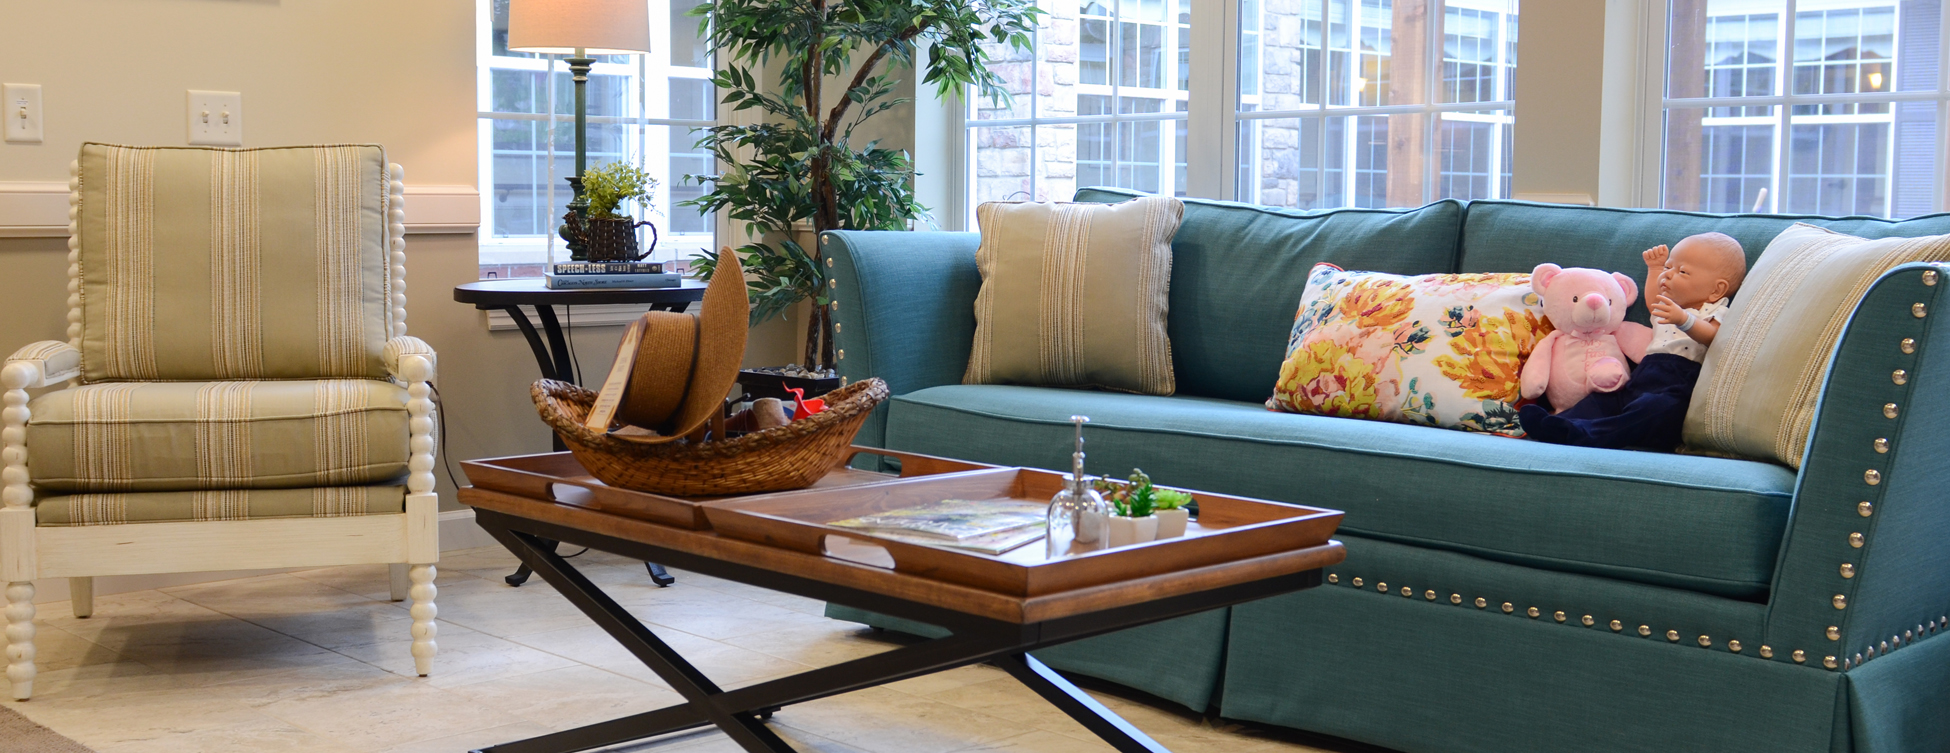 Curl up with a good book in the sunroom at Bickford of Aurora